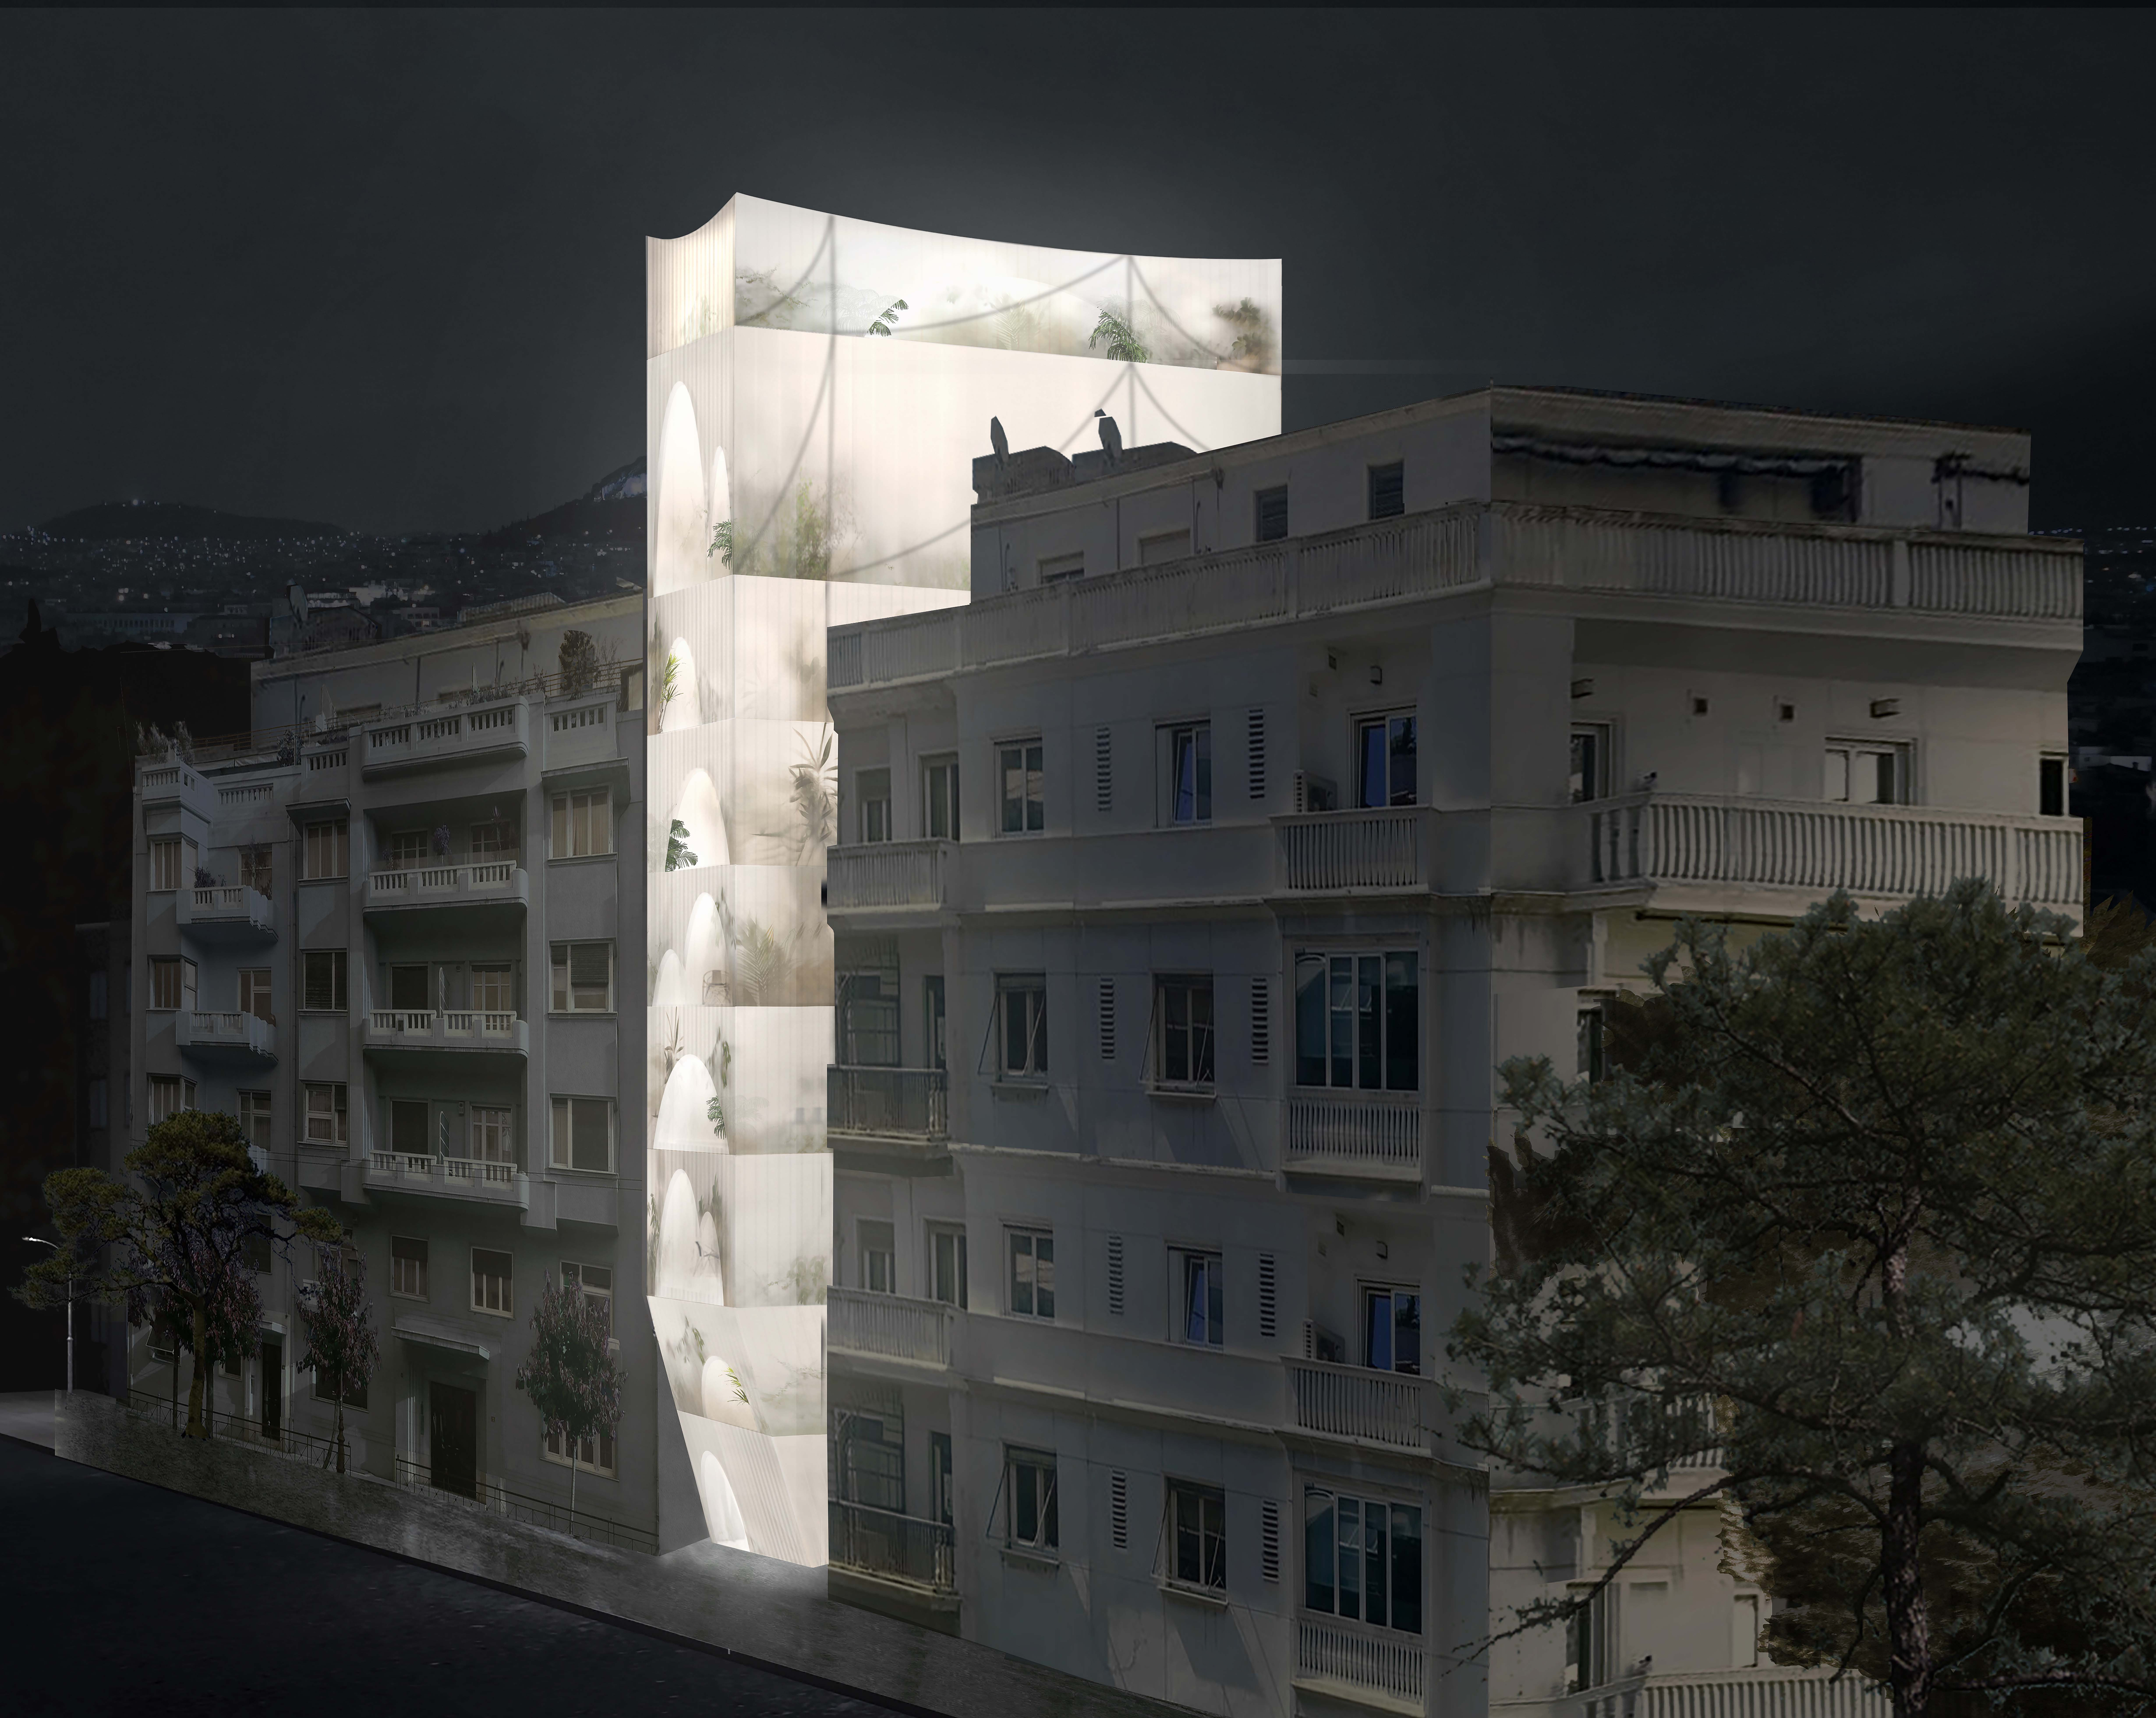 Uniting Space with Translucent Walls H_1002 by 314 architecture studio, Athens, Greece